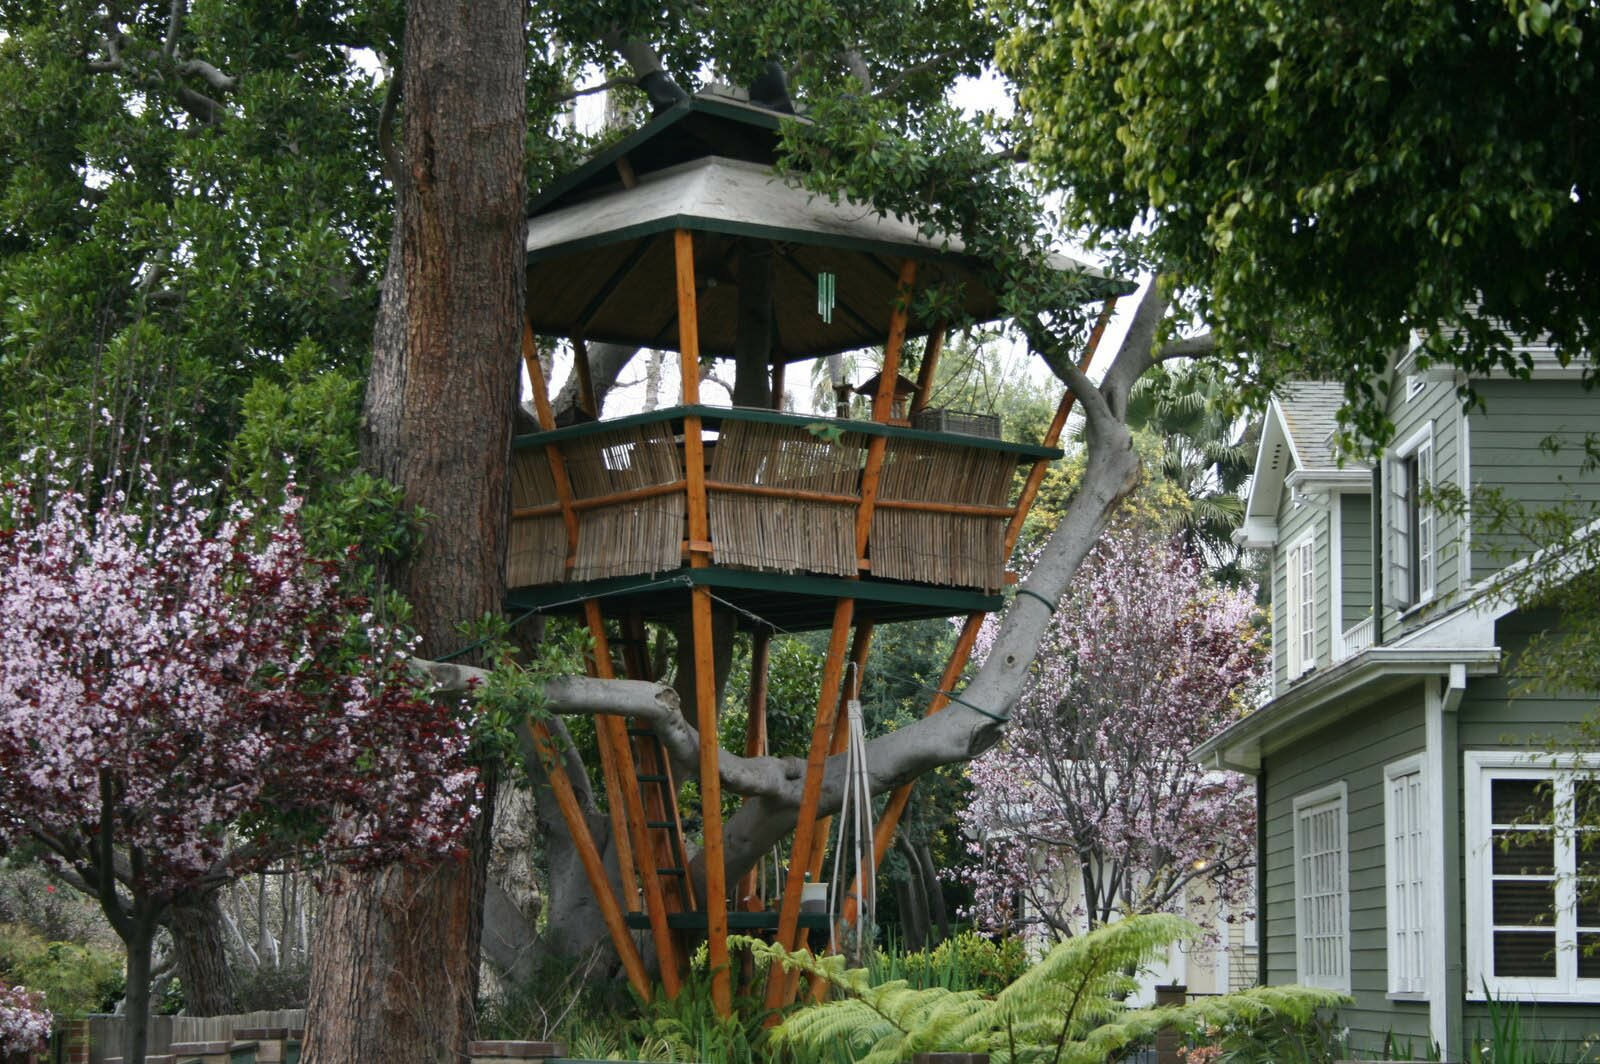 18 amazing tree house designs mostbeautifulthings for Amazing home designs